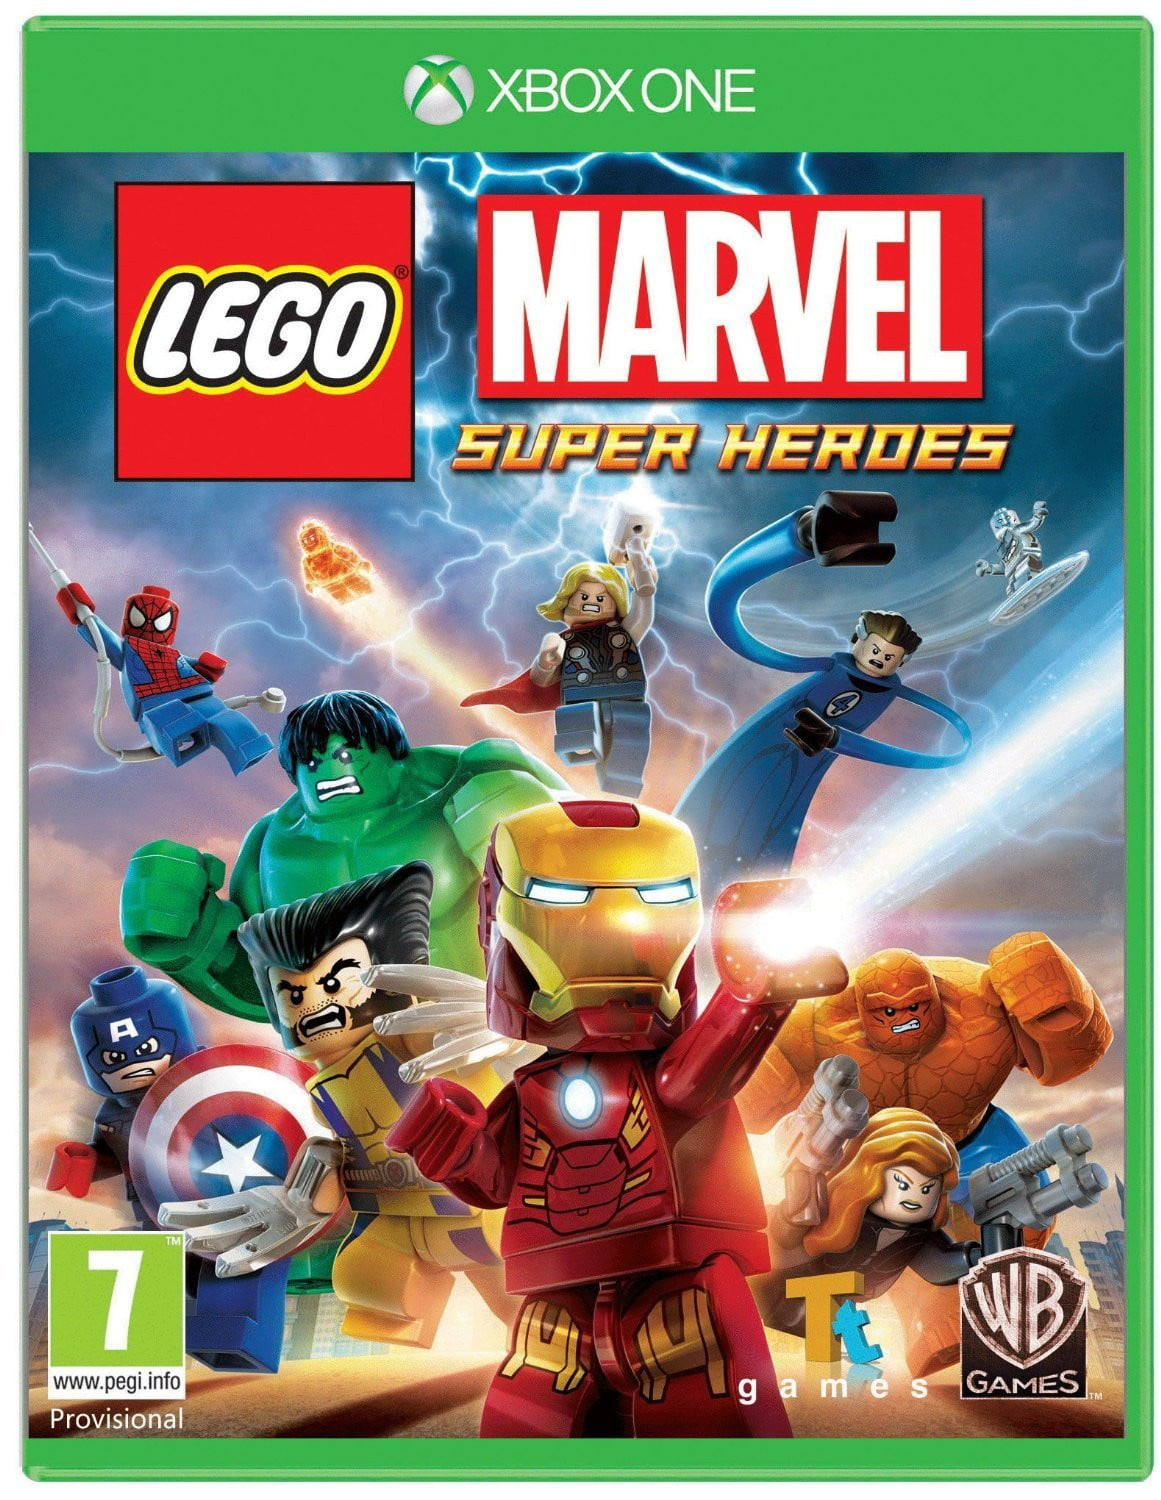 Buy Lego Marvel Super Heroes (XBOX ONE) XBOX ONE in Egypt - Shamy Stores